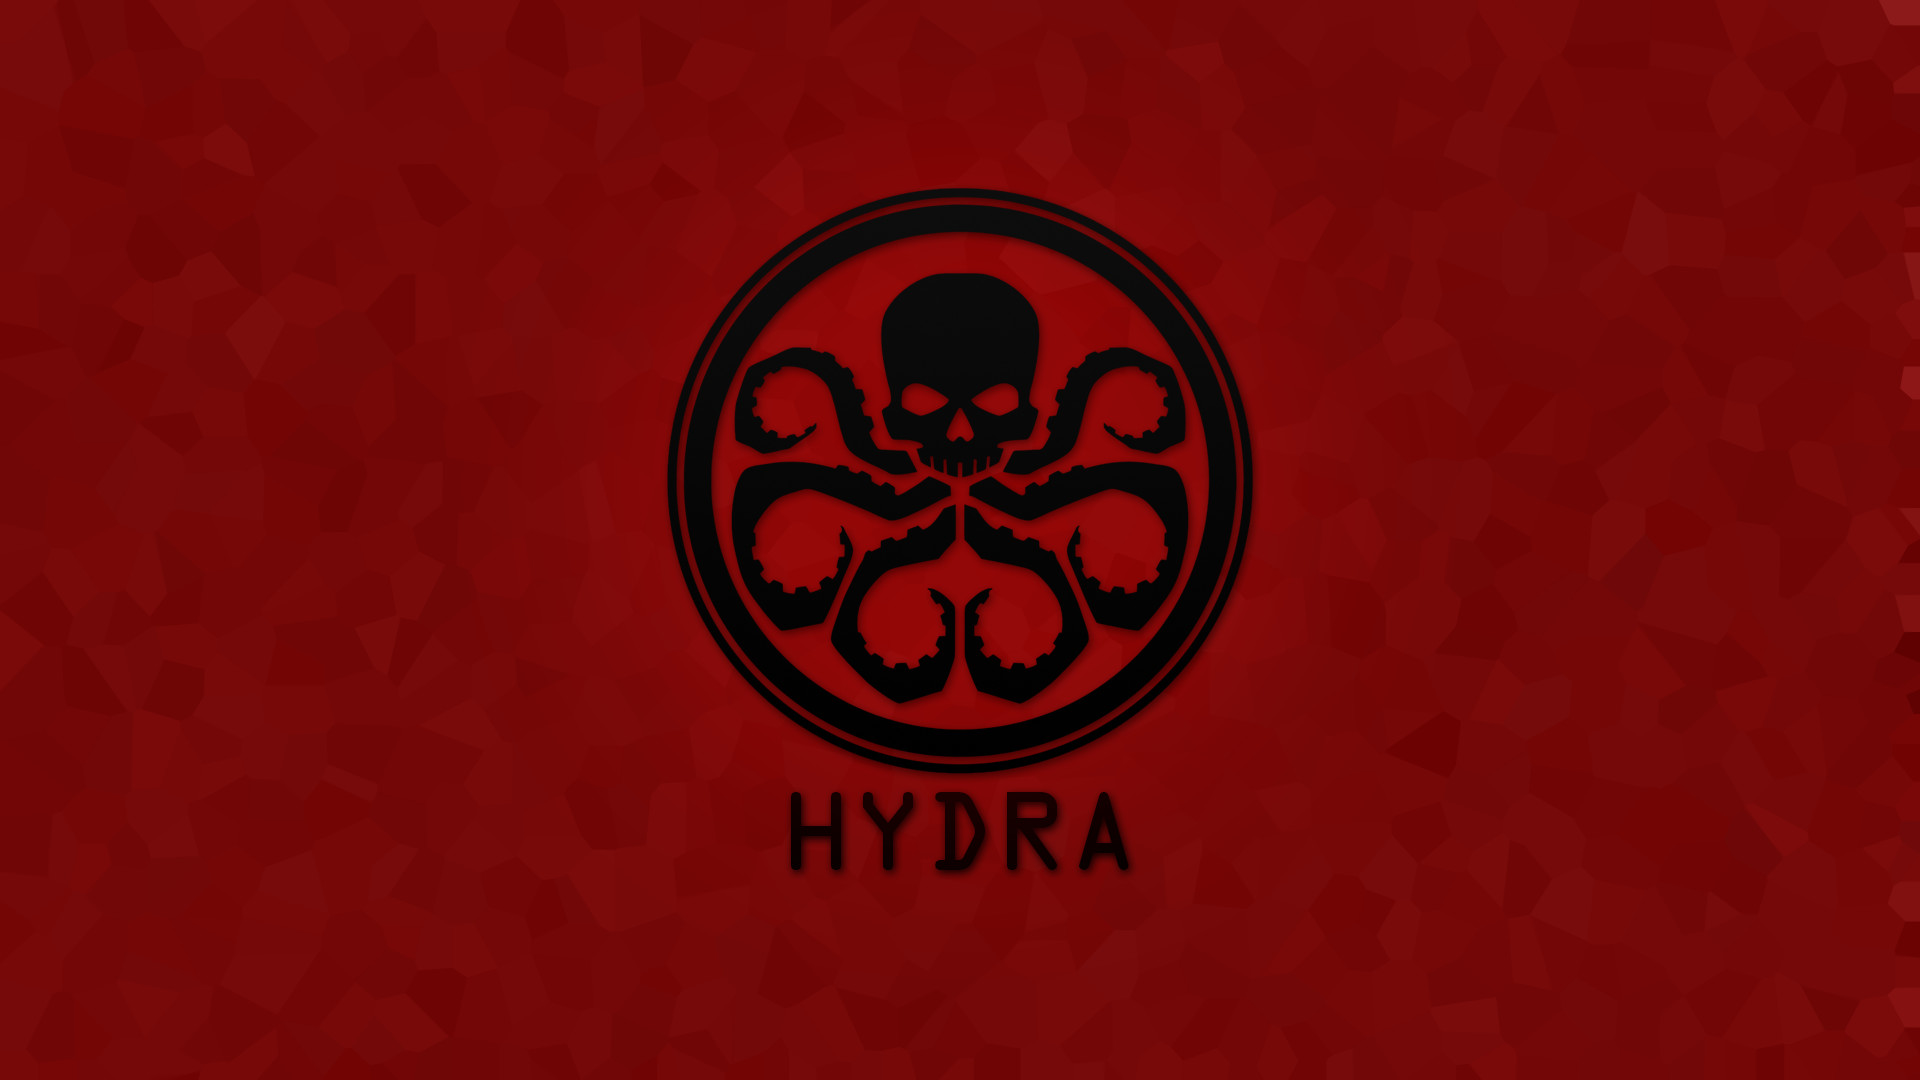 1920x1080 Wallpaper - Hydra by desous on DeviantArt